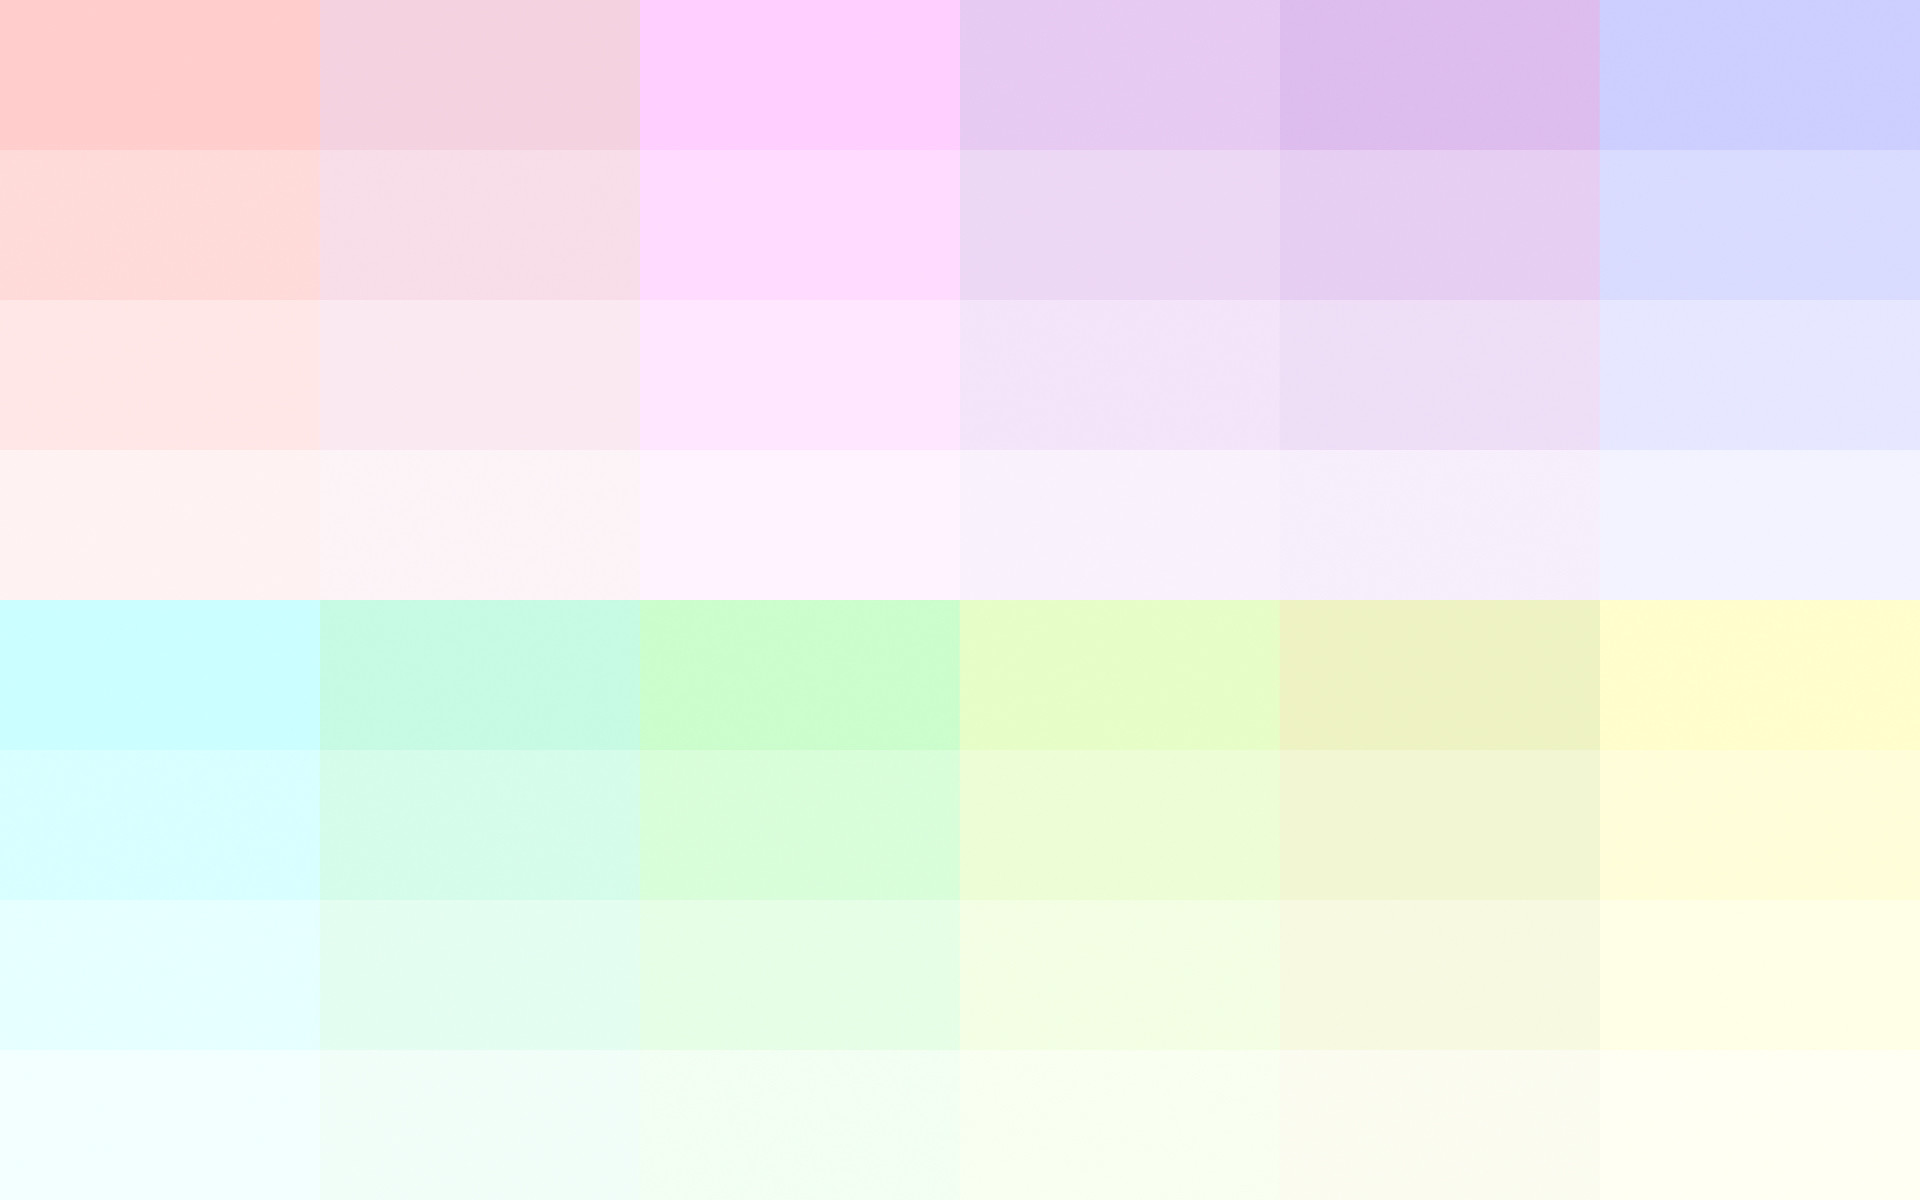 plain-light-color-desktop-background